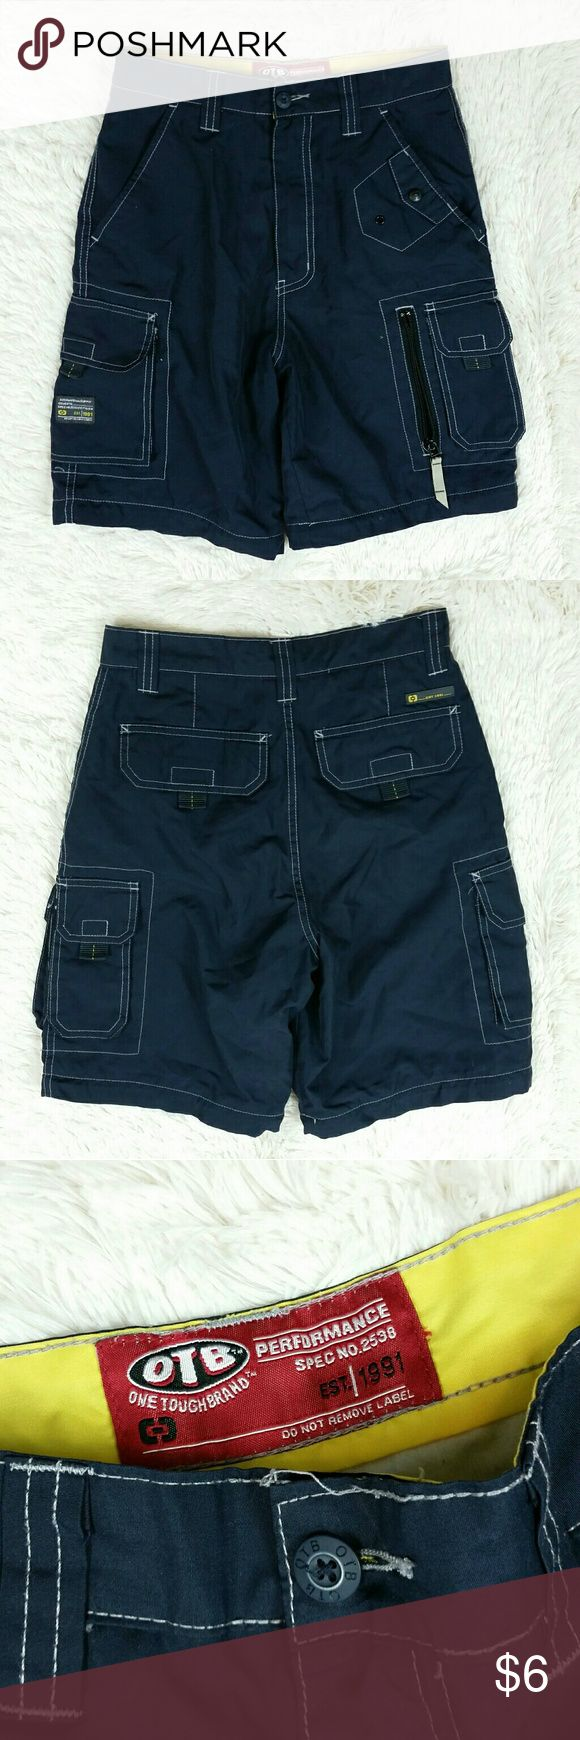 Boys Swim Trunks Size 12 Boys' swim trunks/board shorts, size 12. OTB Swim Swim Trunks